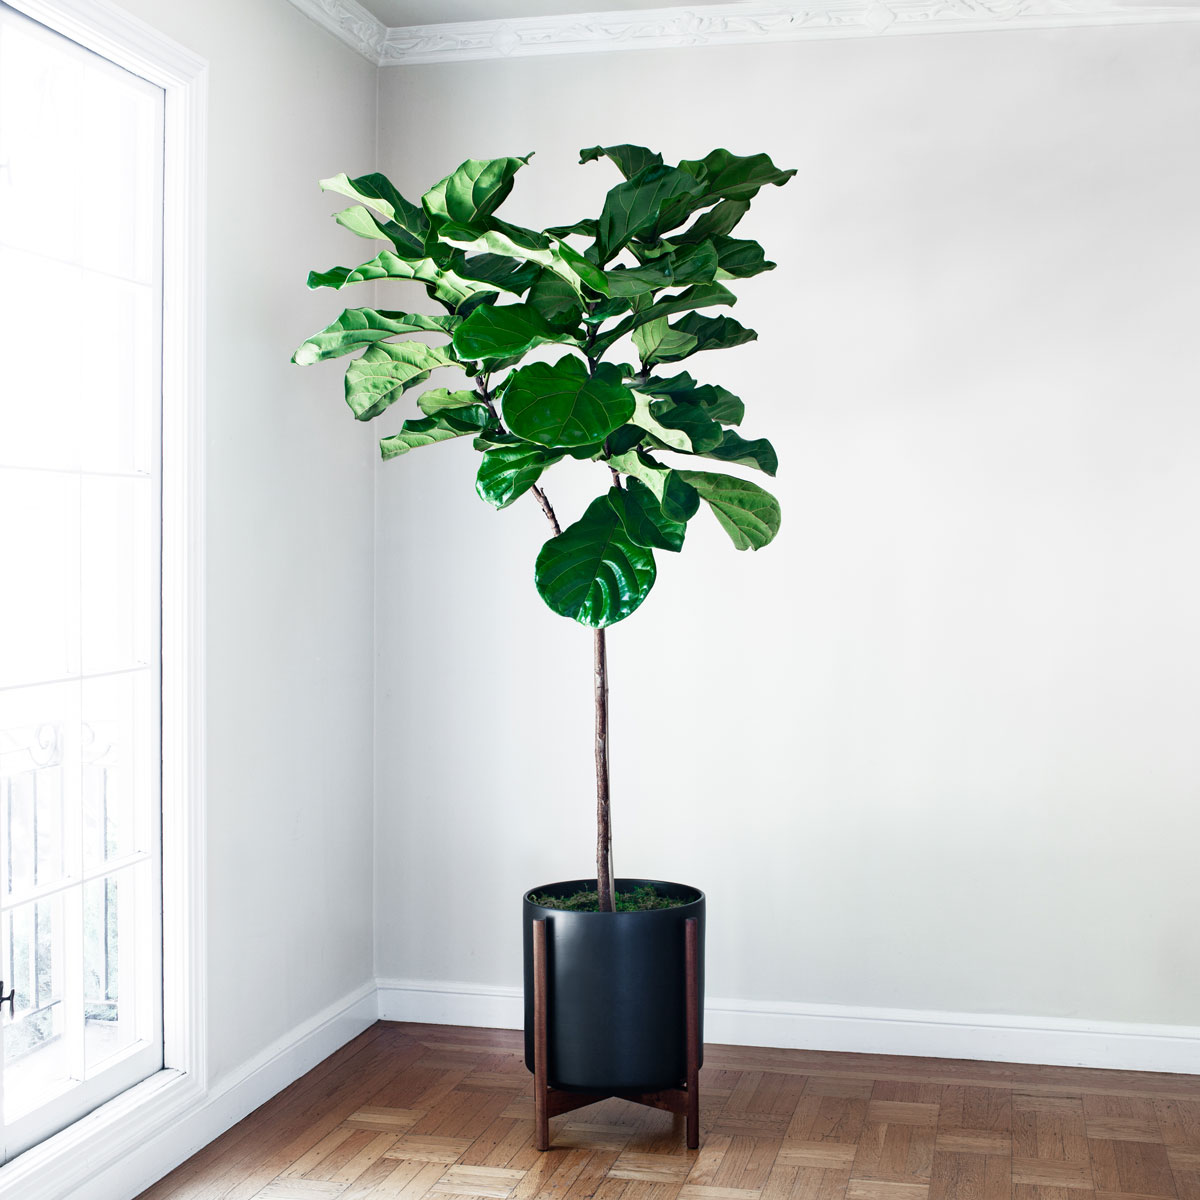 FIDDLE LEAF FIG TREE - A lush and sculptural plant with elegant violin-shaped leaves, the Fiddle Leaf Fig Tree makes for a dramatic addition to any indoor space – truly a must-have for all who appreciate style and greenery.6-7ft tall plant with ceramic pot and reclaimed wood stand: $599Delivery in SF & LA included